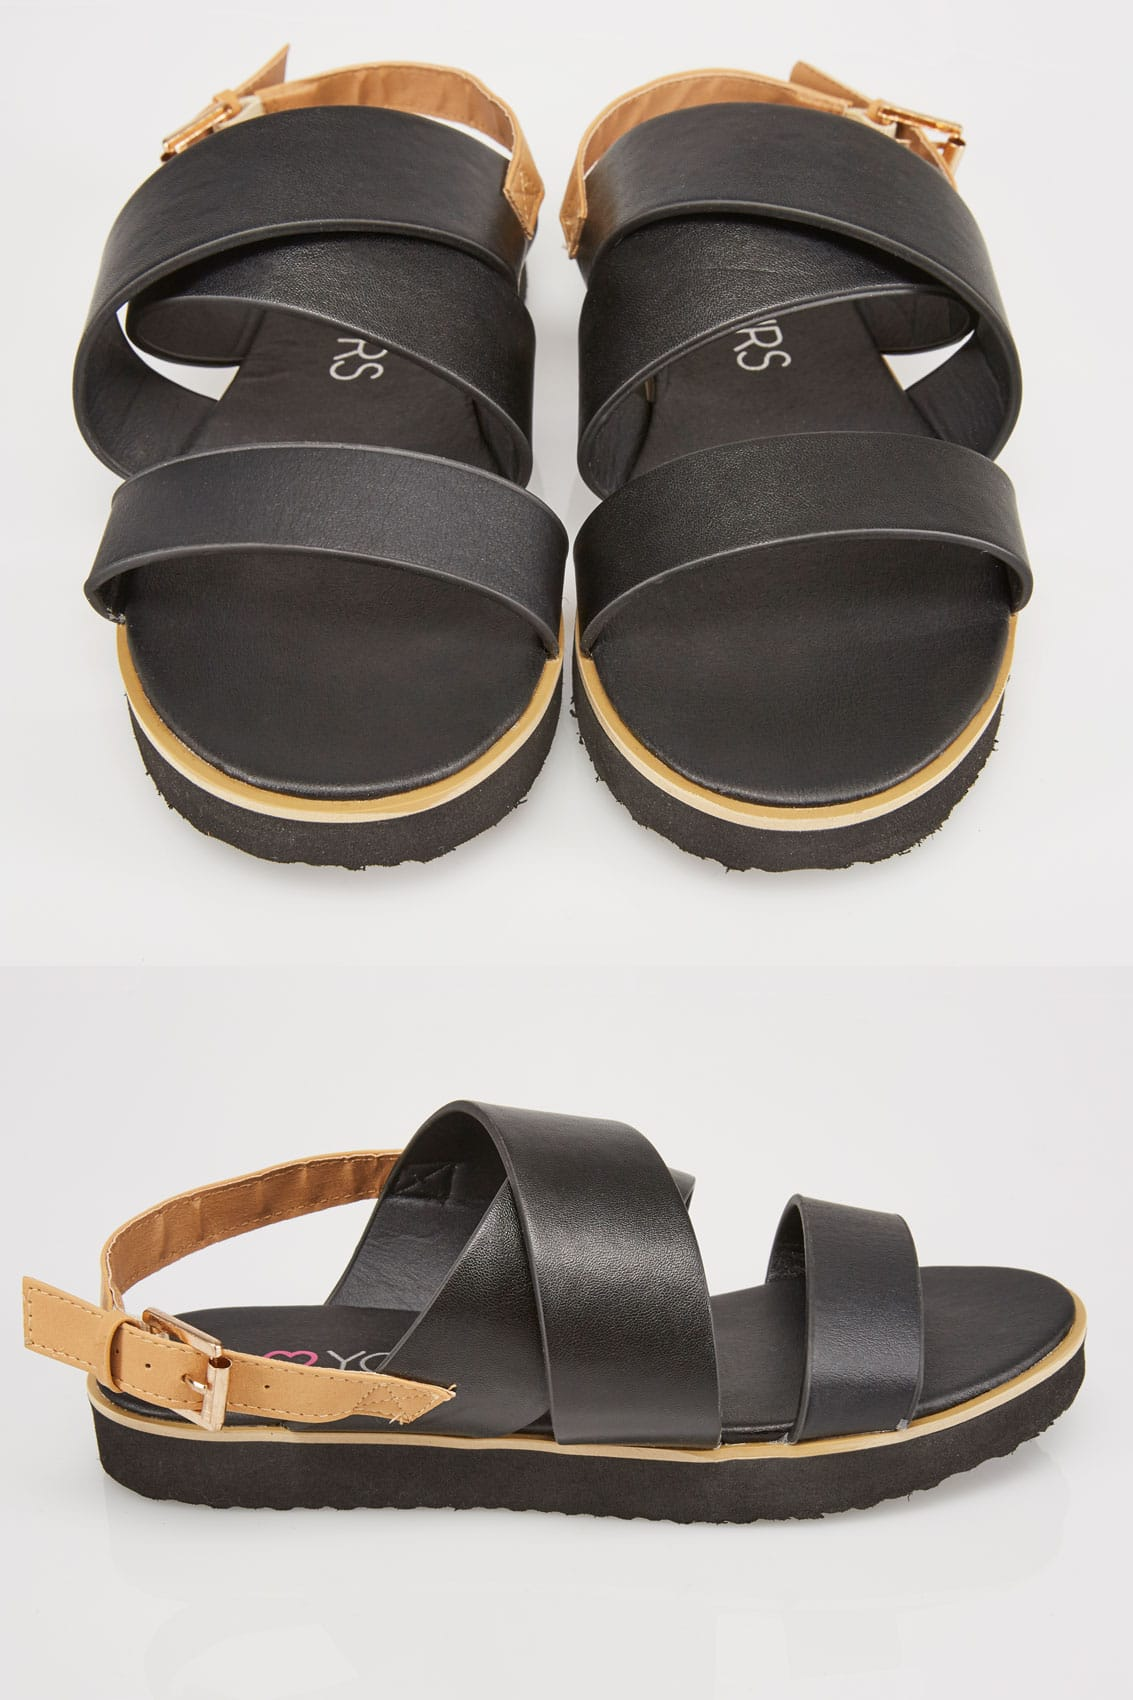 Black Three Strap Flat Sandals With Contrast Ba In Eee Fit